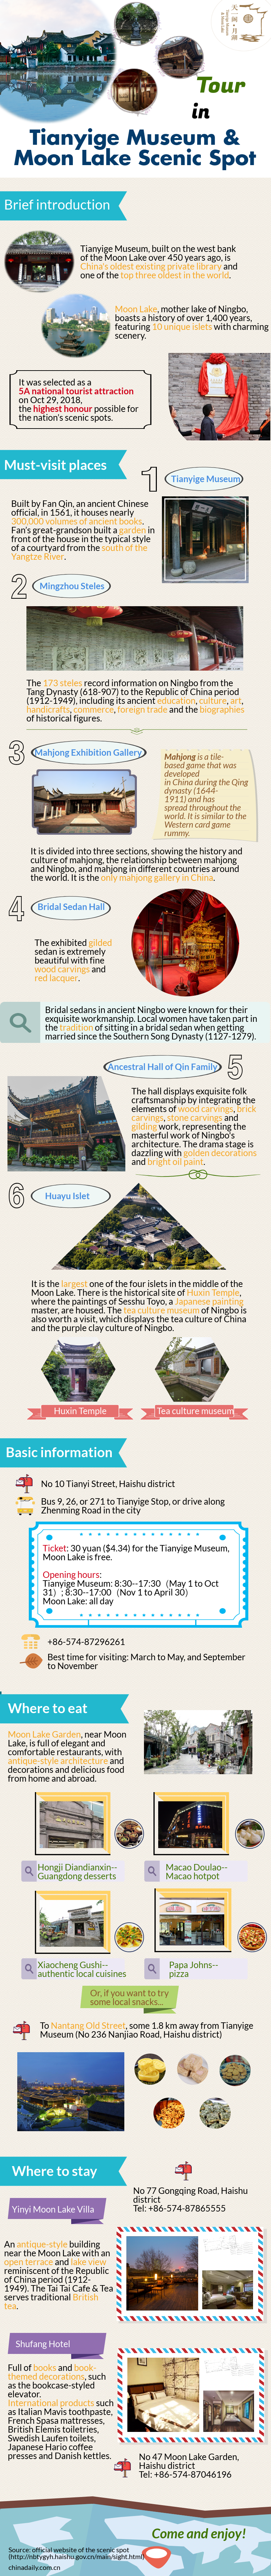 Tour in Tianyige Museum & Moon Lake Scenic Spot.png